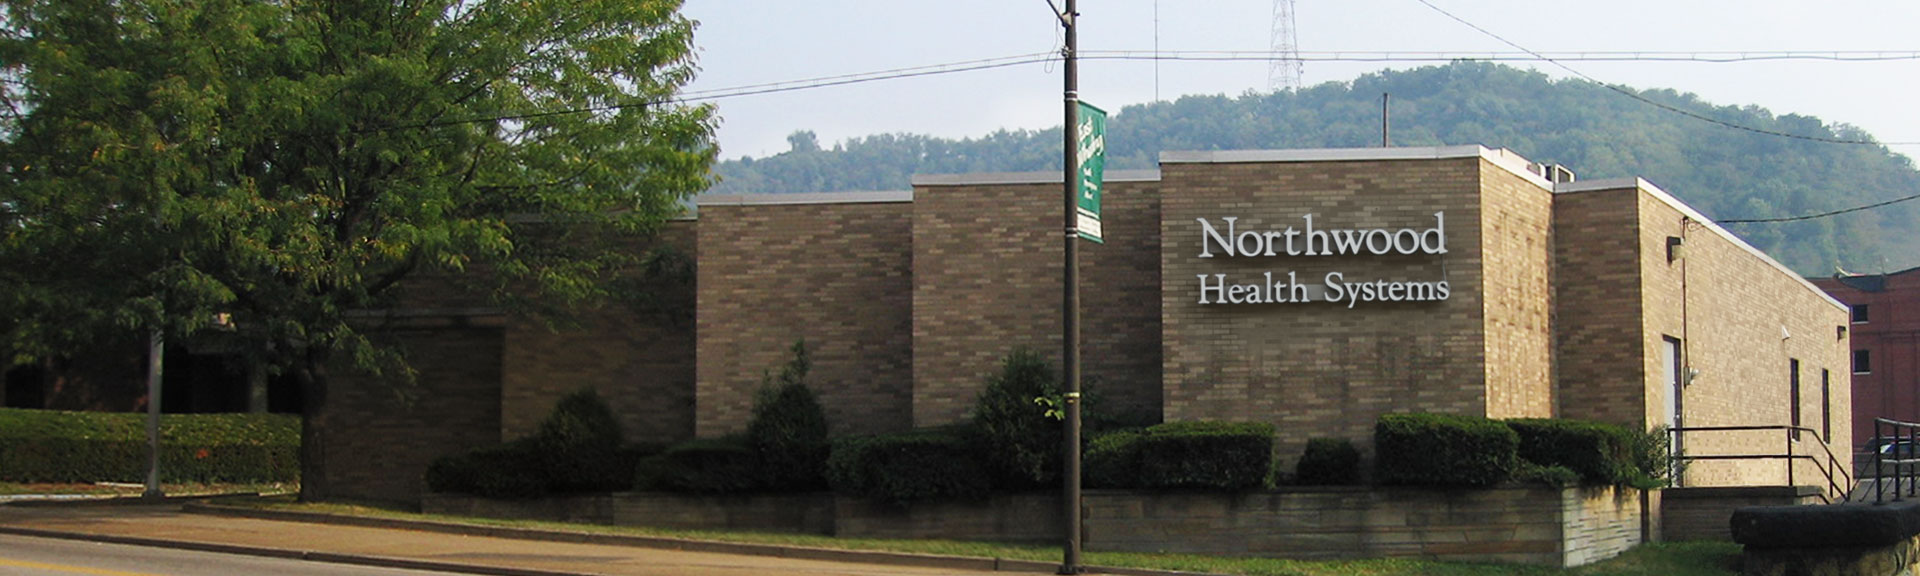 Locations Northwood Health Systems